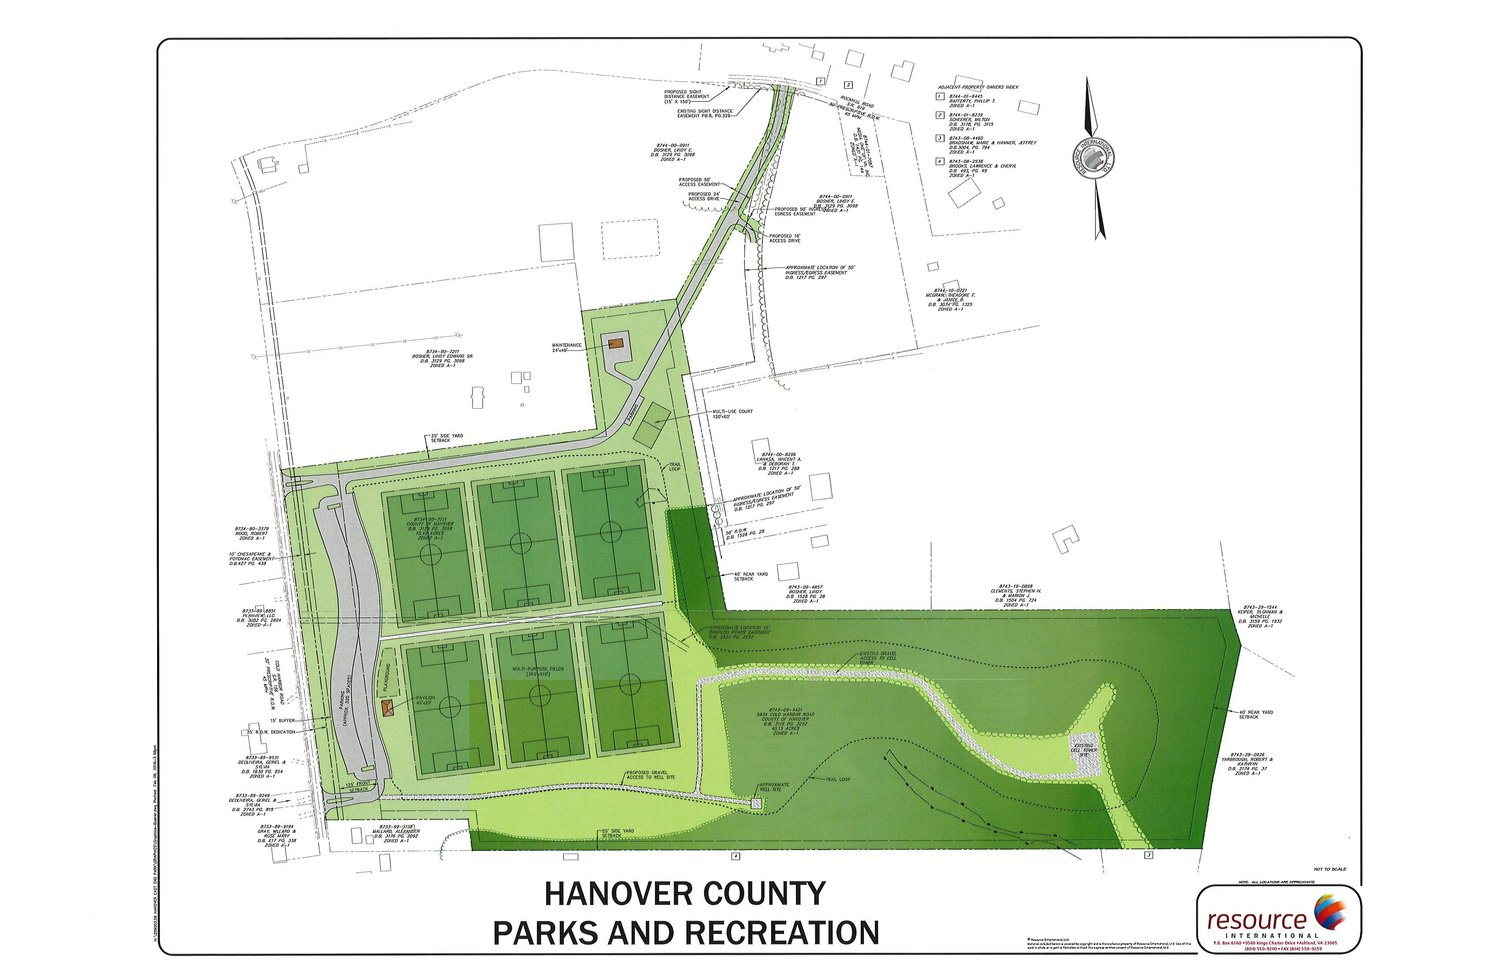 Hanover County Parks and Recreation Selects Resource as Engineer for